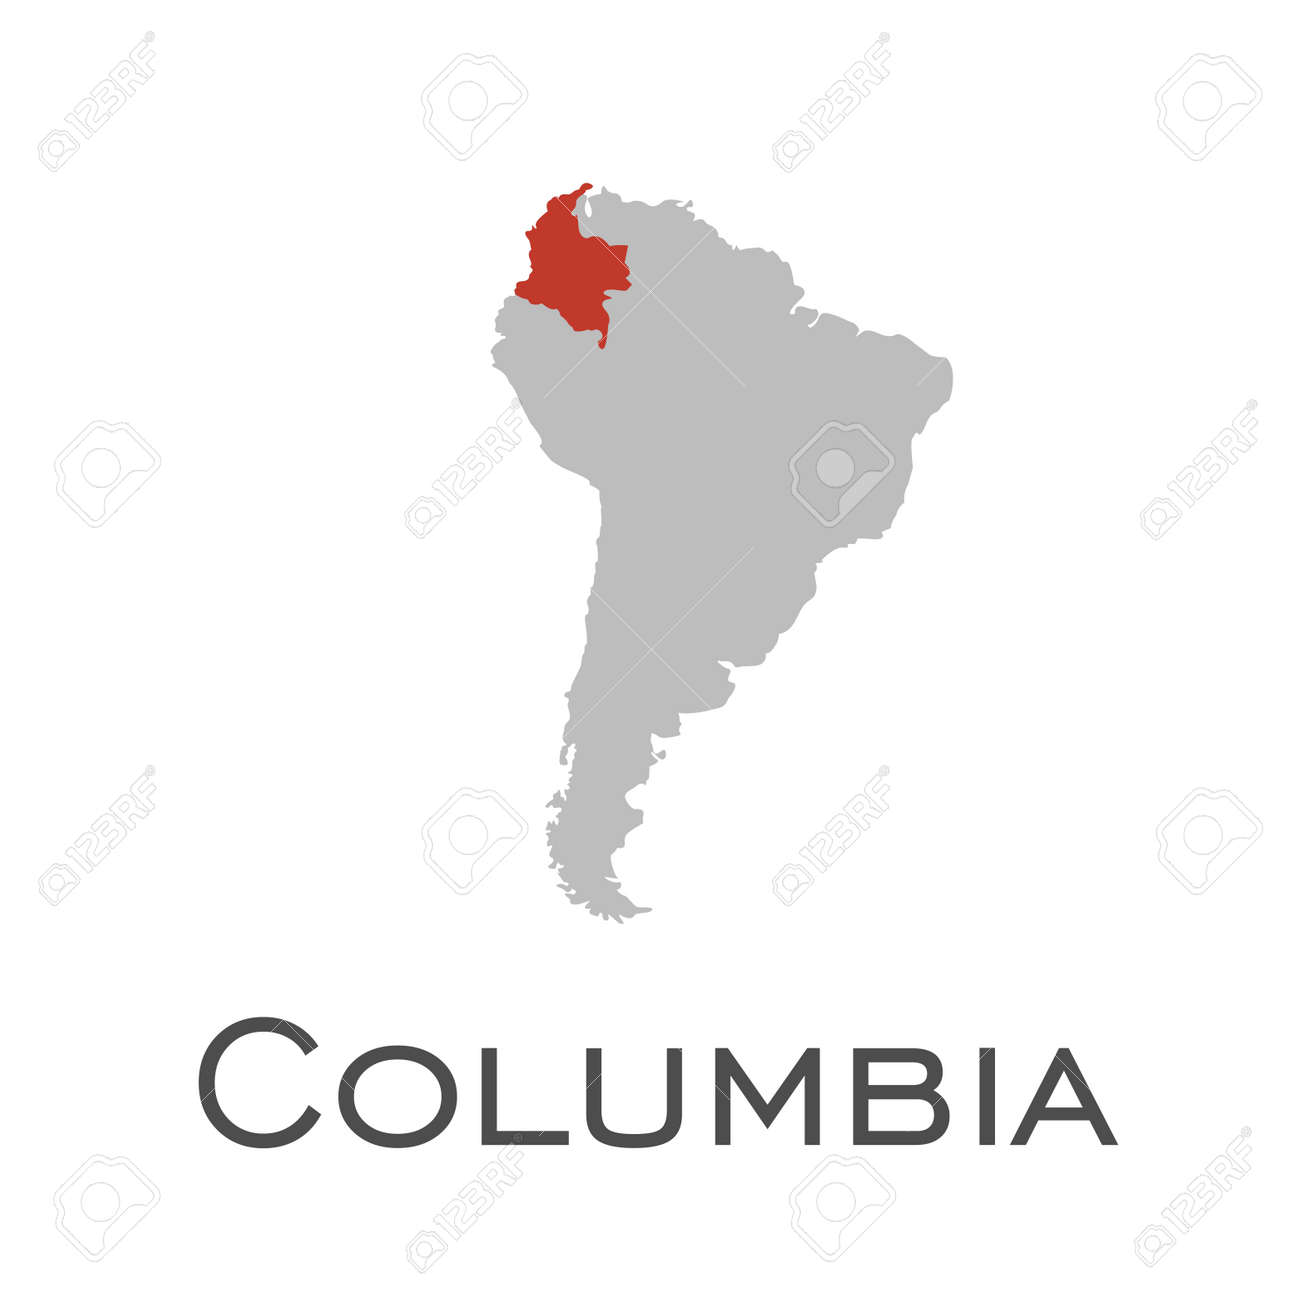 columbia and south american continent map royalty free cliparts